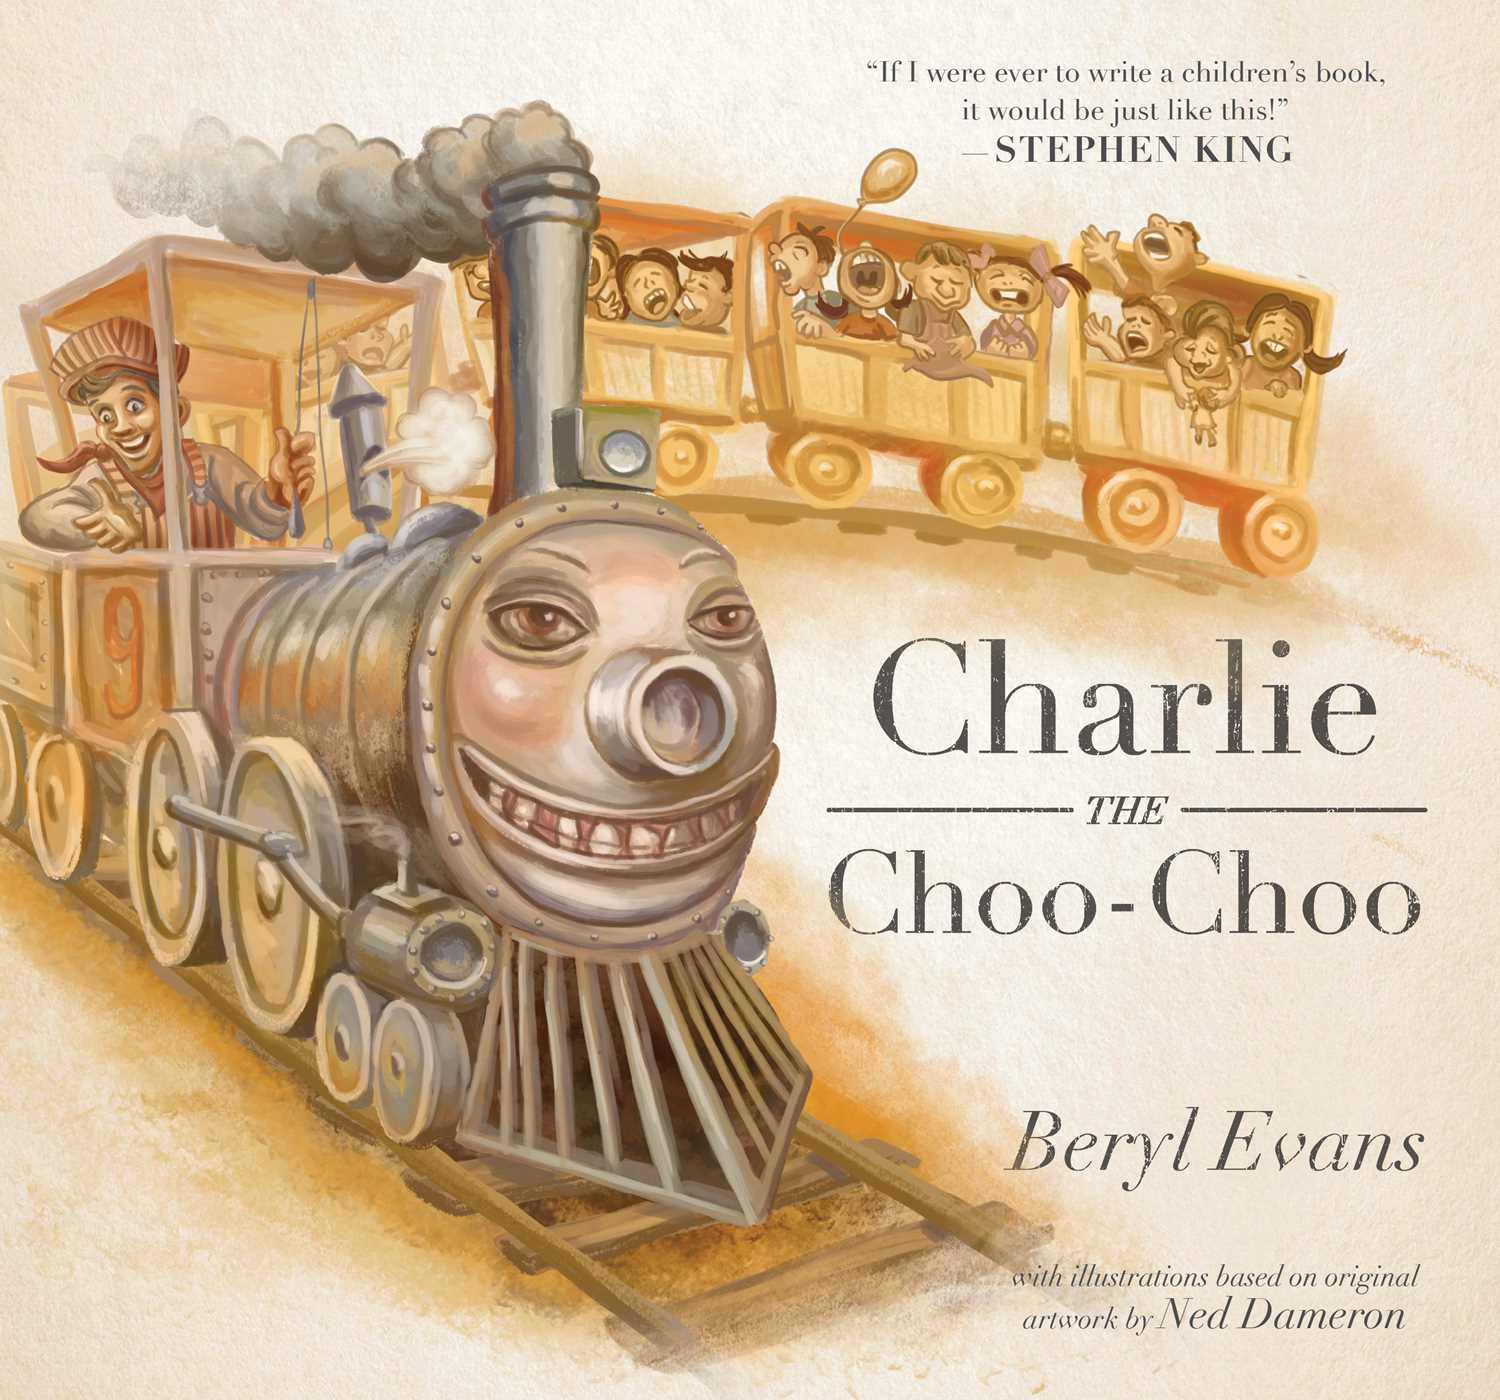 Charlie the Choo-Choo : From the world of The Dark Tower